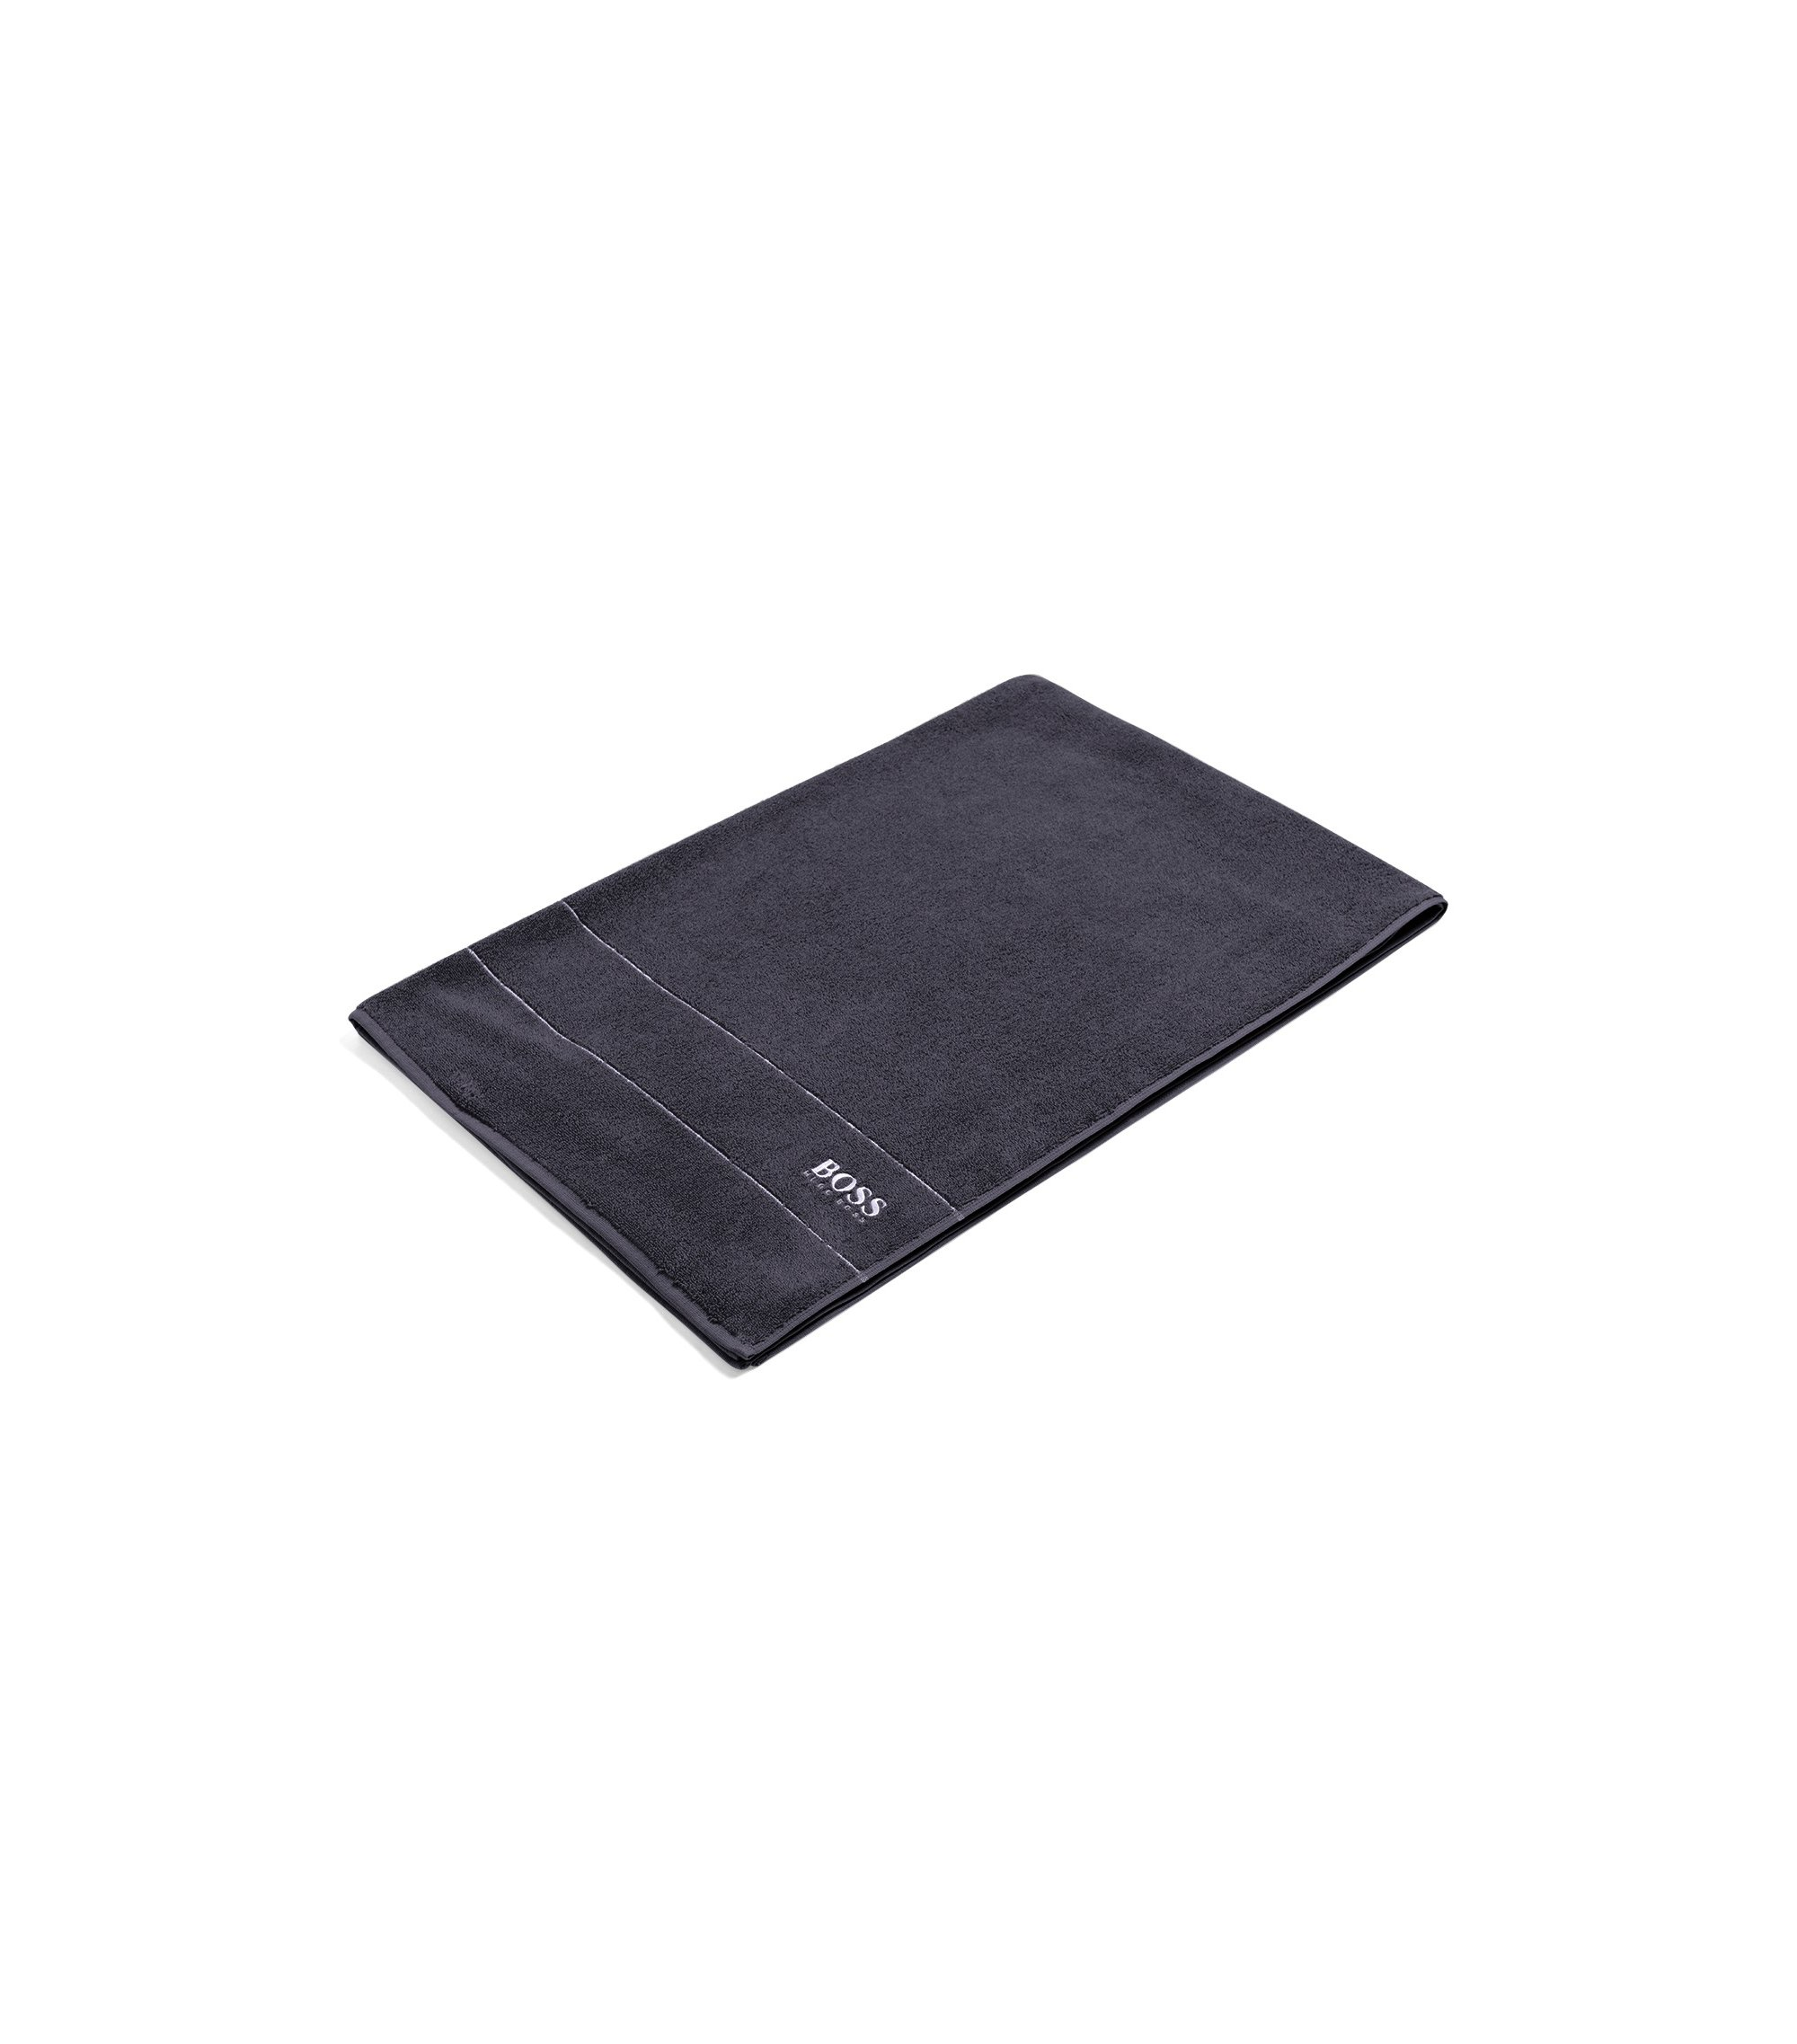 Finest Egyptian cotton bath sheet with logo border, Anthracite